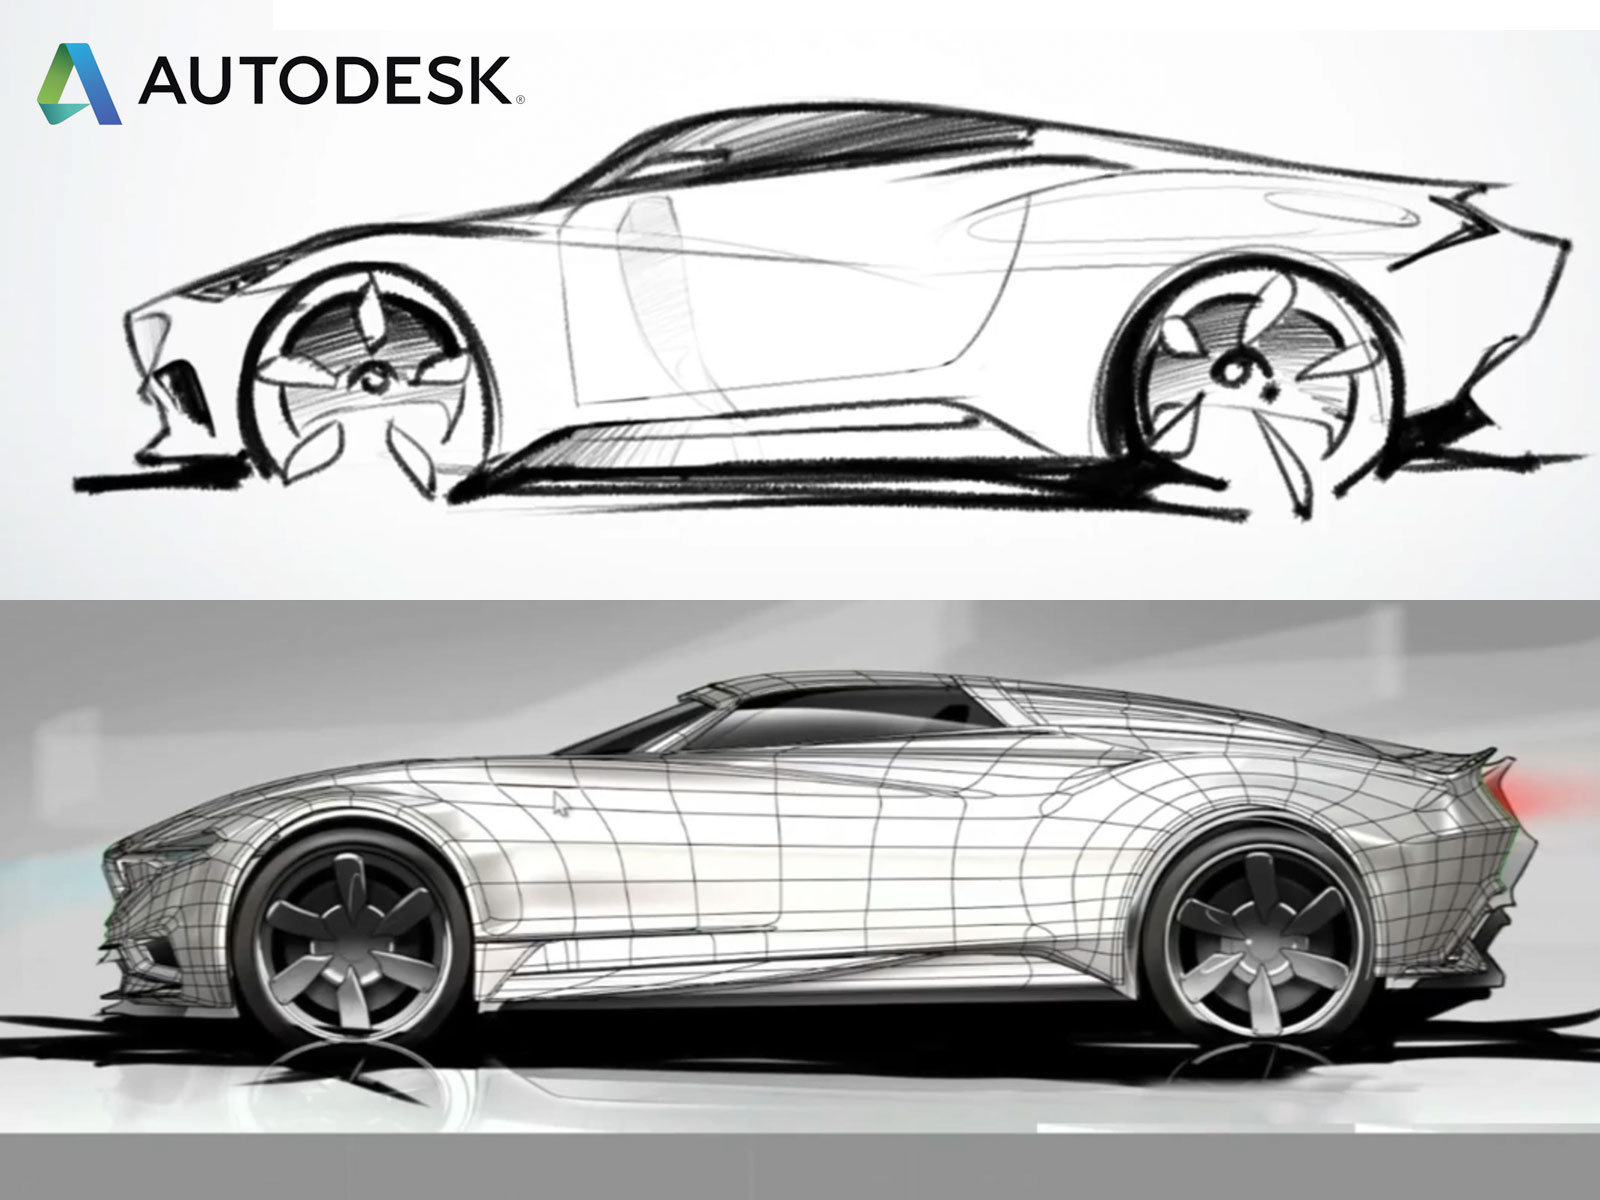 create your own rc car with Car Body Design Bbppdoy4gyyvzmifezzvl7mubjxalxoyd4iig1rhpis on Photo 04 besides Car Body Design BbppdoY4GyyVZMIfezZVl7mUbjXALXOyD4iIG1RHpis furthermore Alfie Boe I Realised How Far I Could Push Myself additionally Photo 65 further 20160119 Snow And Ice Are No Match For These 3d Printed Winter Tires For The Openrc F1 Race Car.